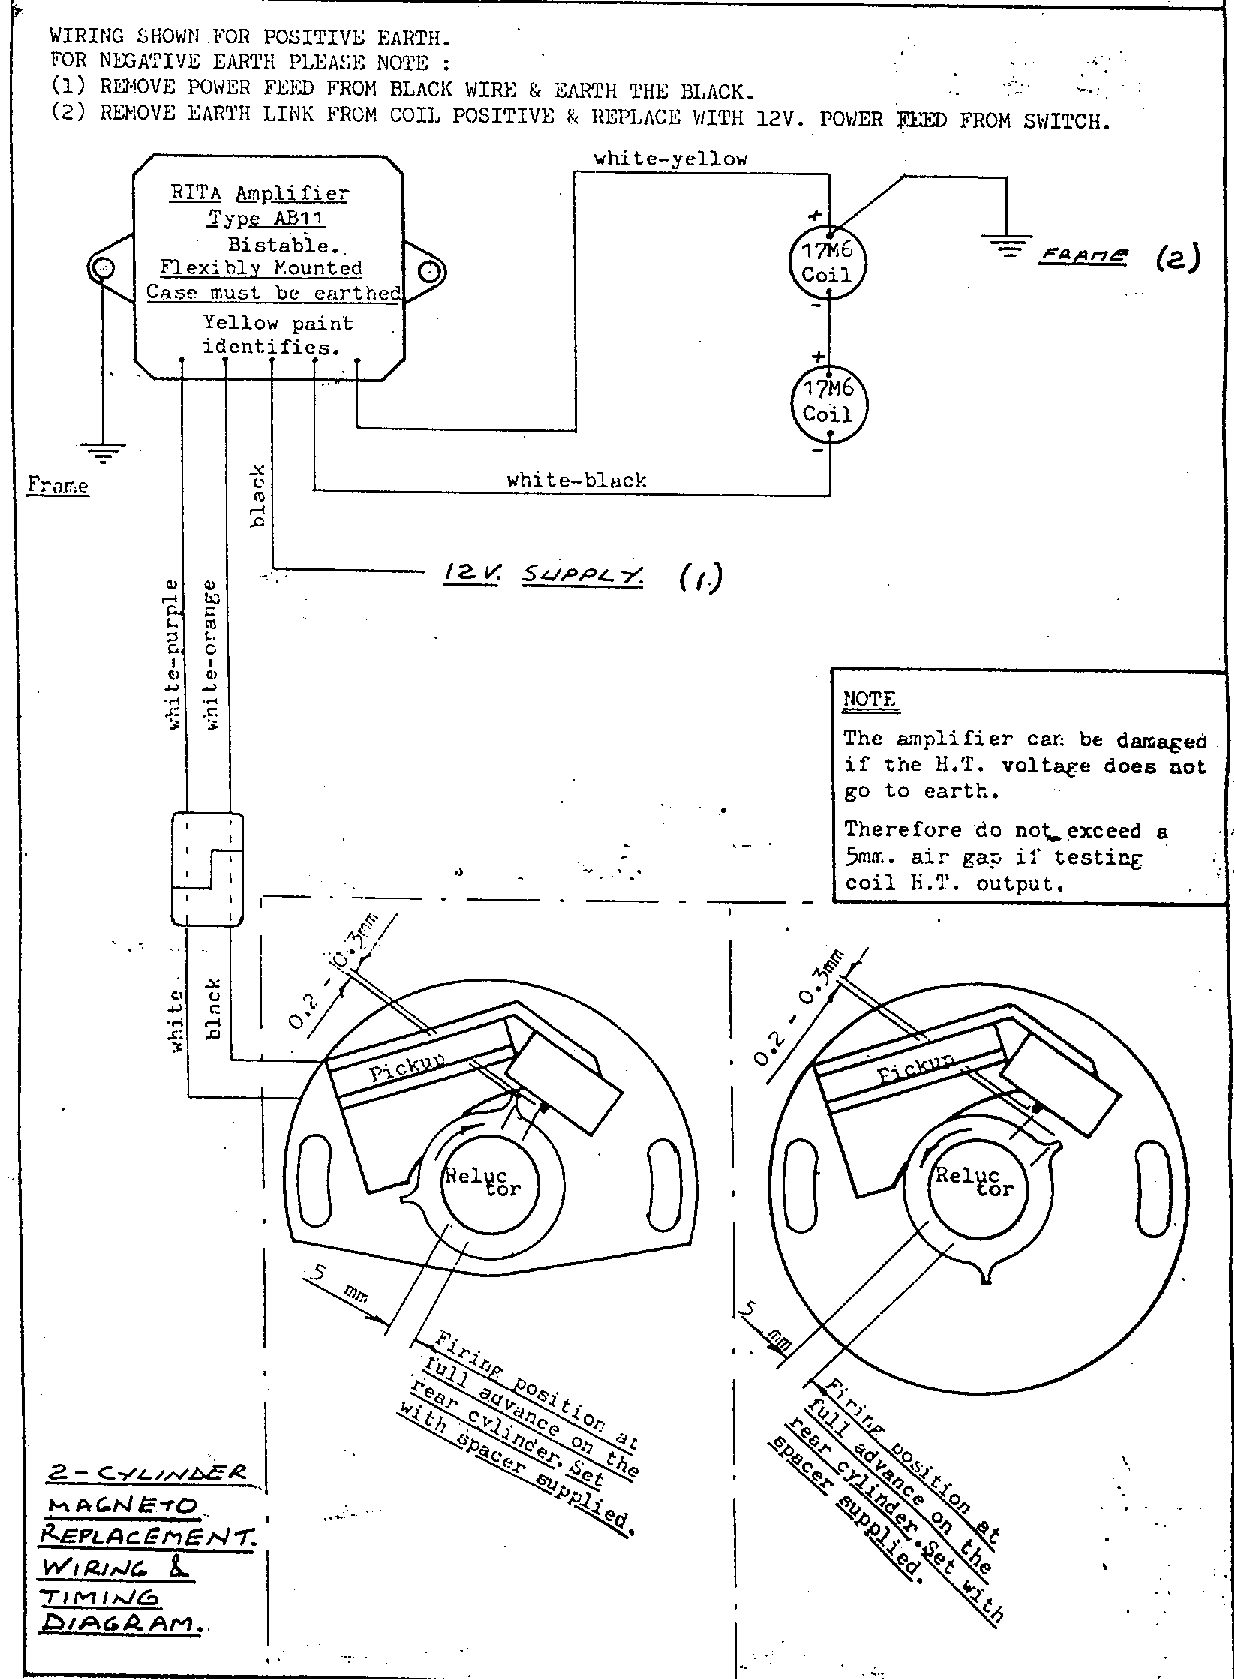 magneto wiring diagram 1963 chevy pickup lycoming 31 images